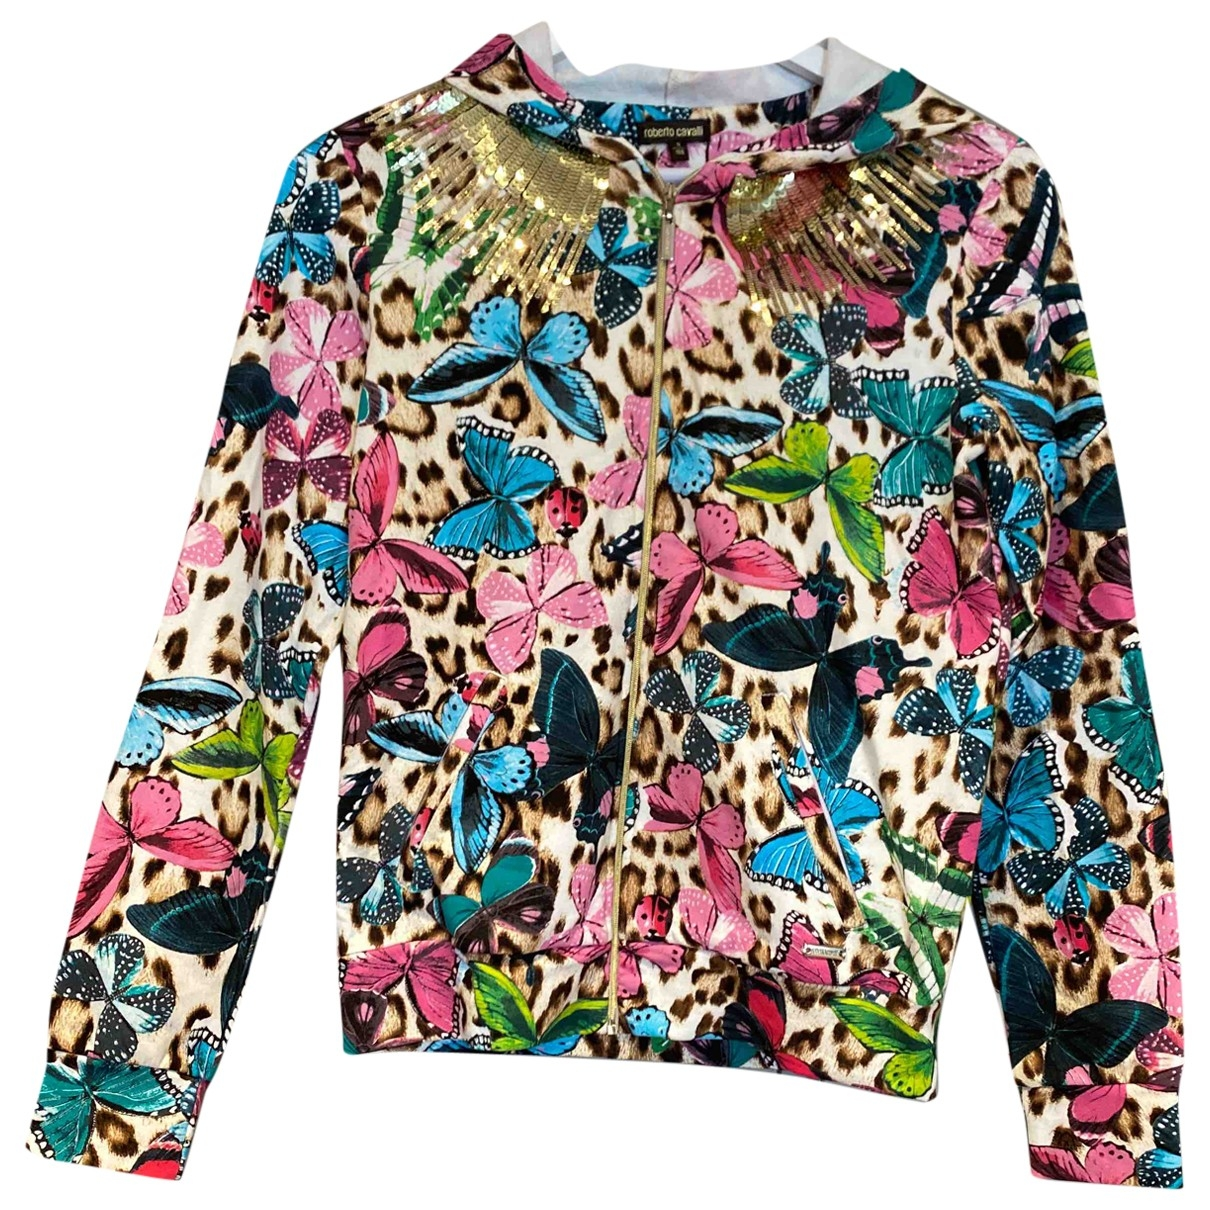 Roberto Cavalli \N Multicolour Cotton Outfits for Kids 14 years - S FR